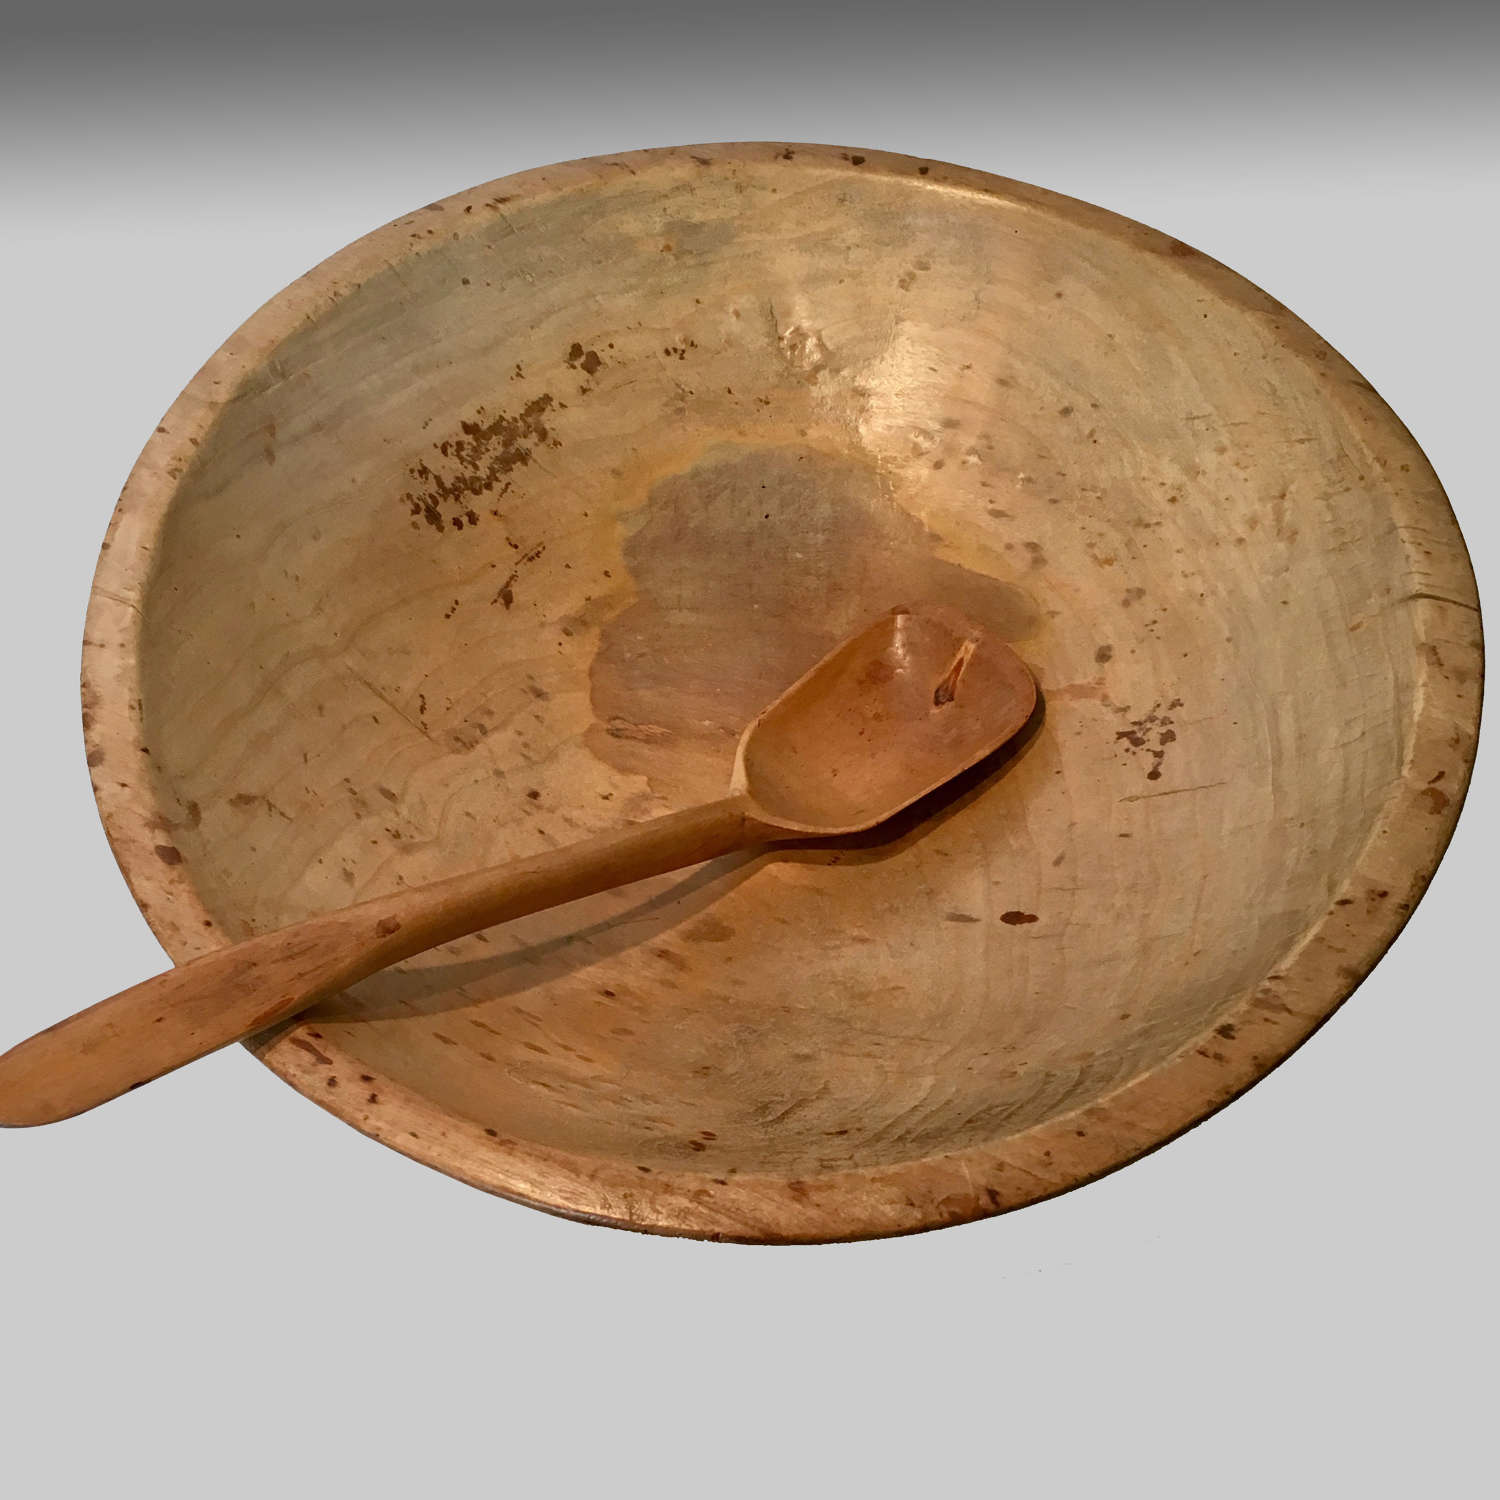 Antique sycamore dairy bowl and spoon